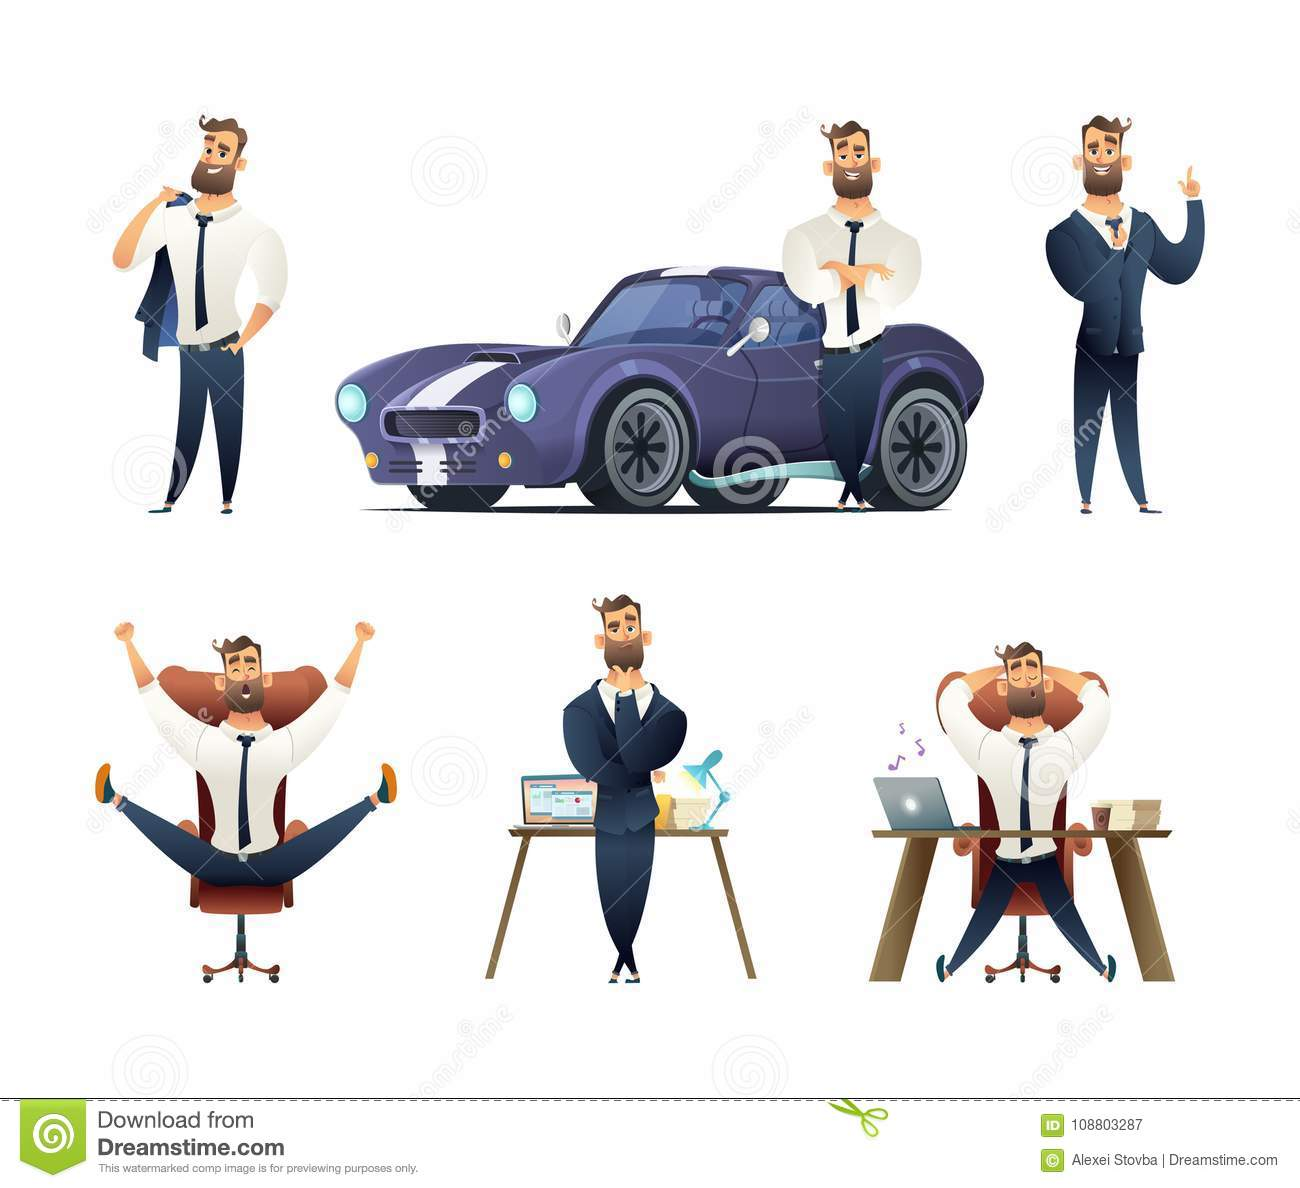 Download Charming Beard Businessman Collection. Sucessfull Man Character. Set Of Business Man Character In Different Situations. Stock Vector - Illustration of professional, flat: 108803287